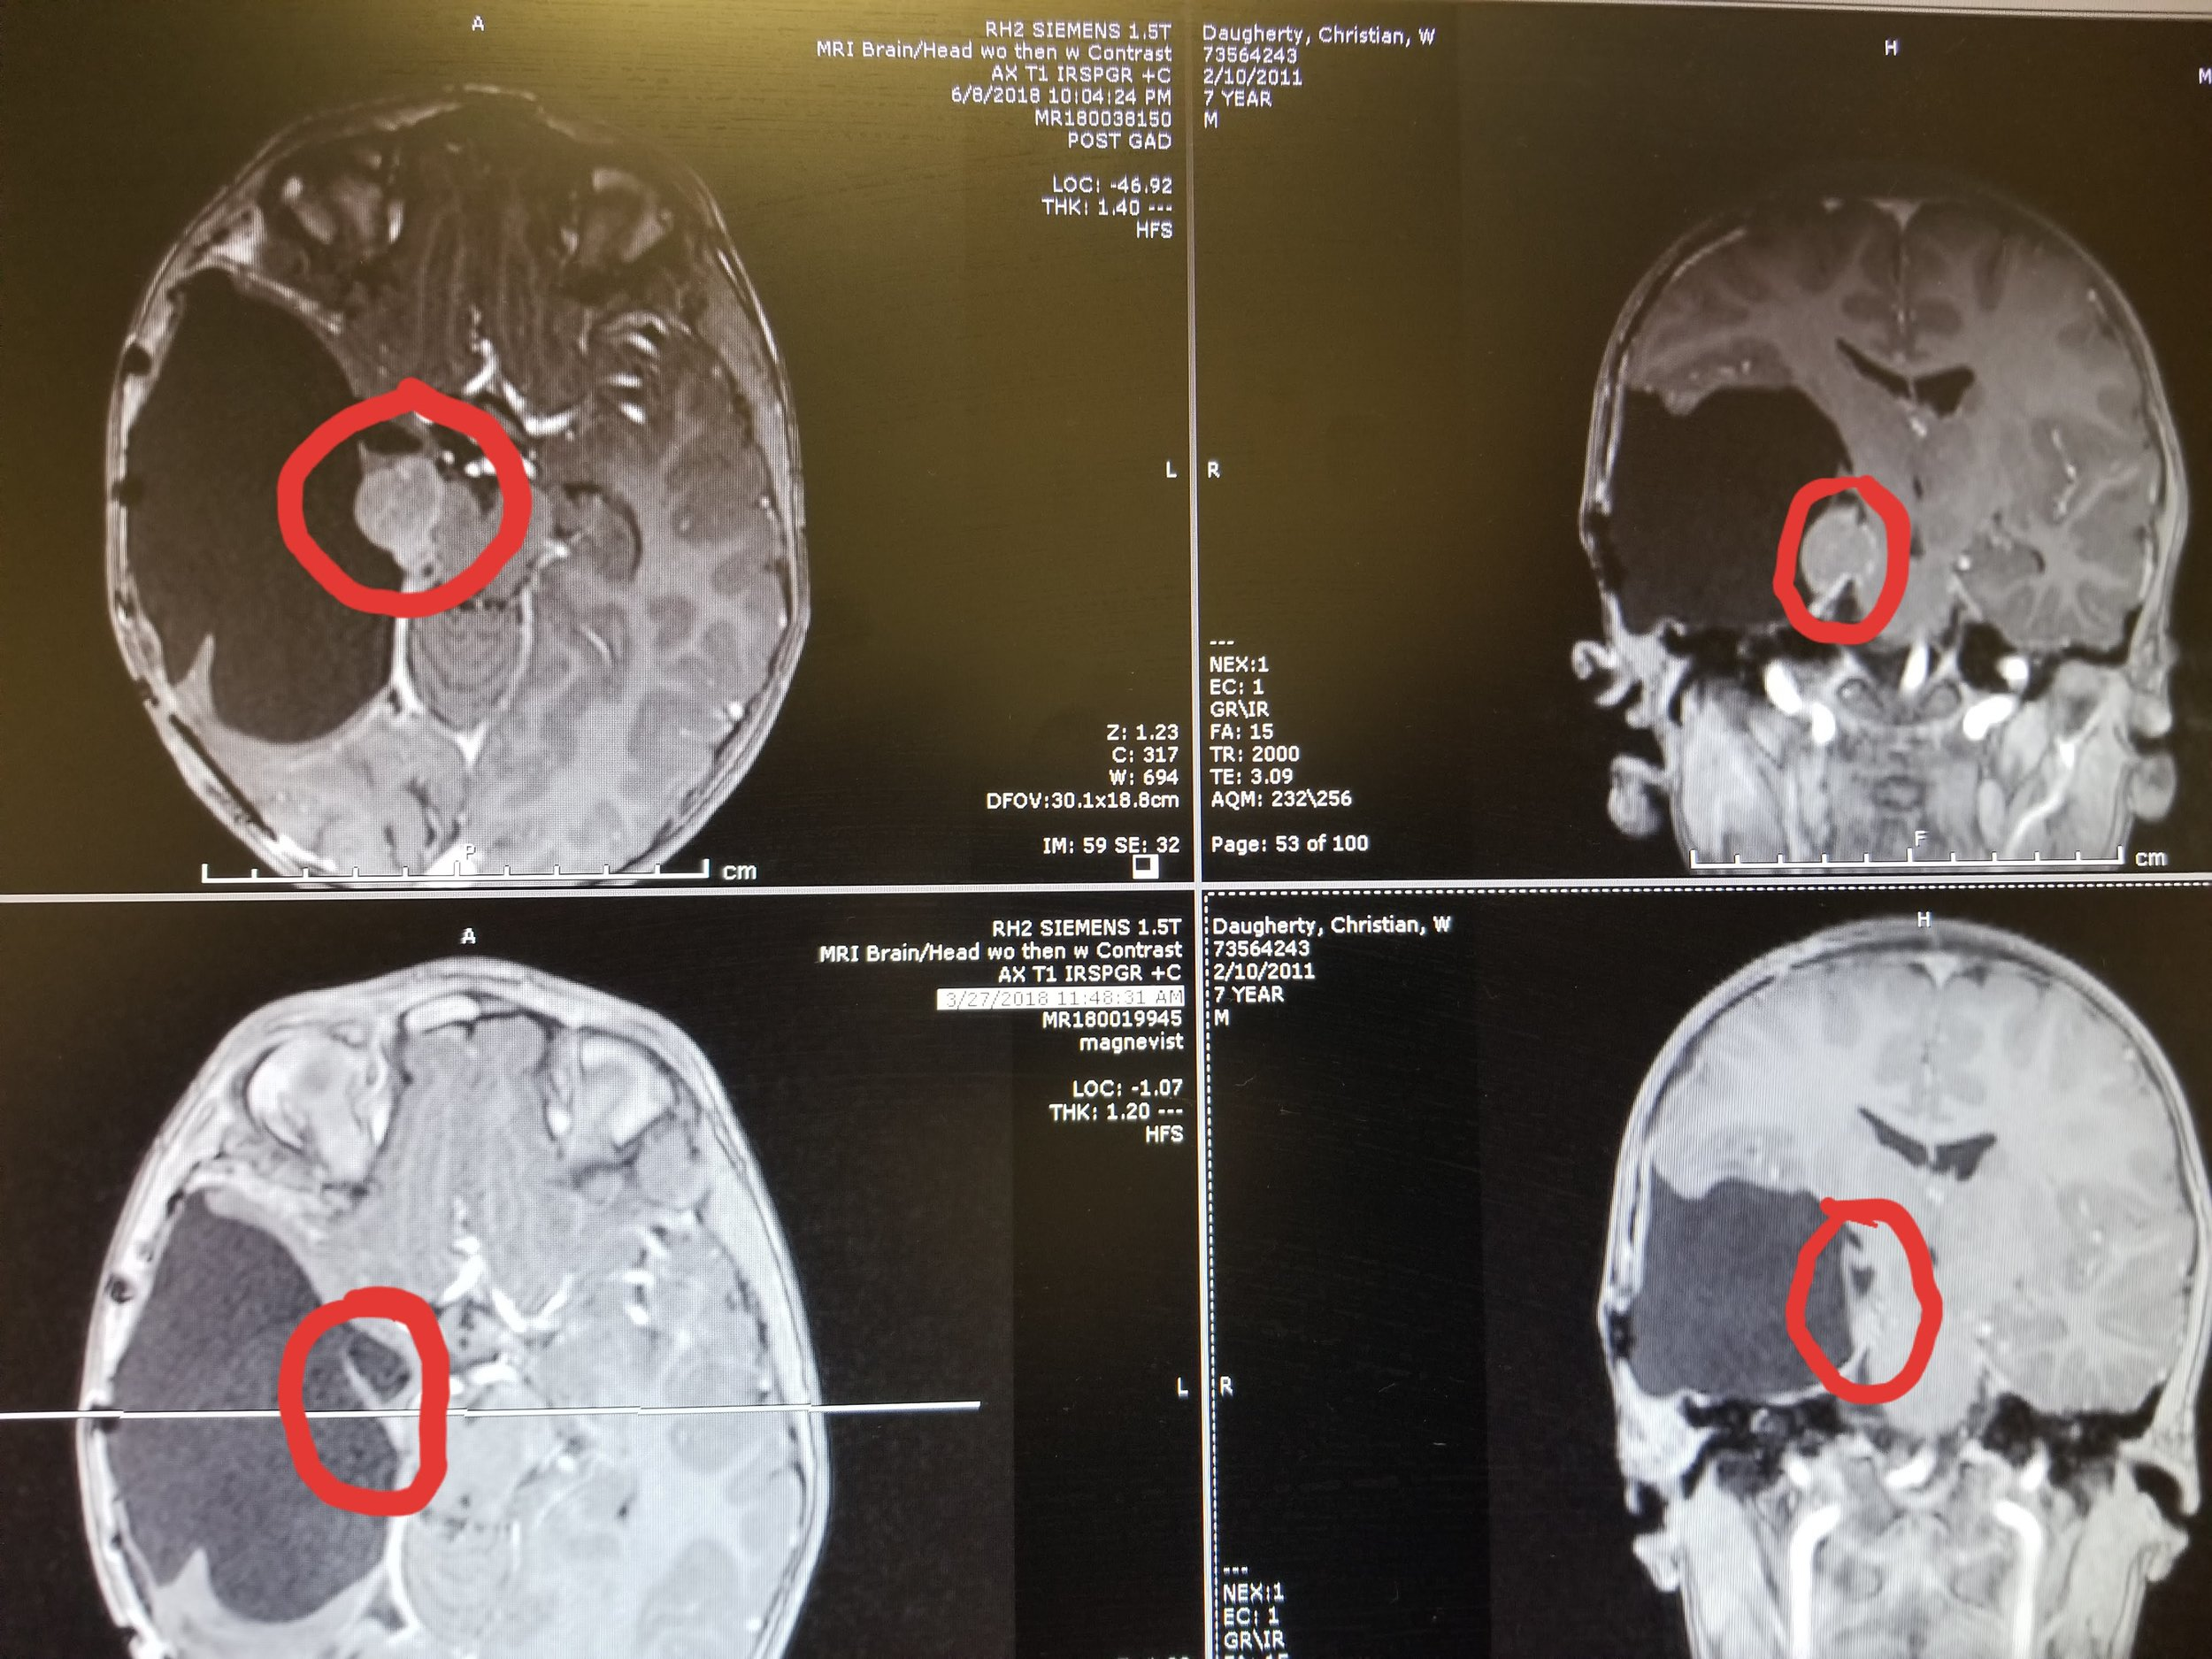 The left darker side of the scan shows where Christian now lacks part of his brain. It was removed to save his life from the tumor, circle, which is growing on his brain stem. A year and a half after this scan, four more tumors were found growing in his brain.